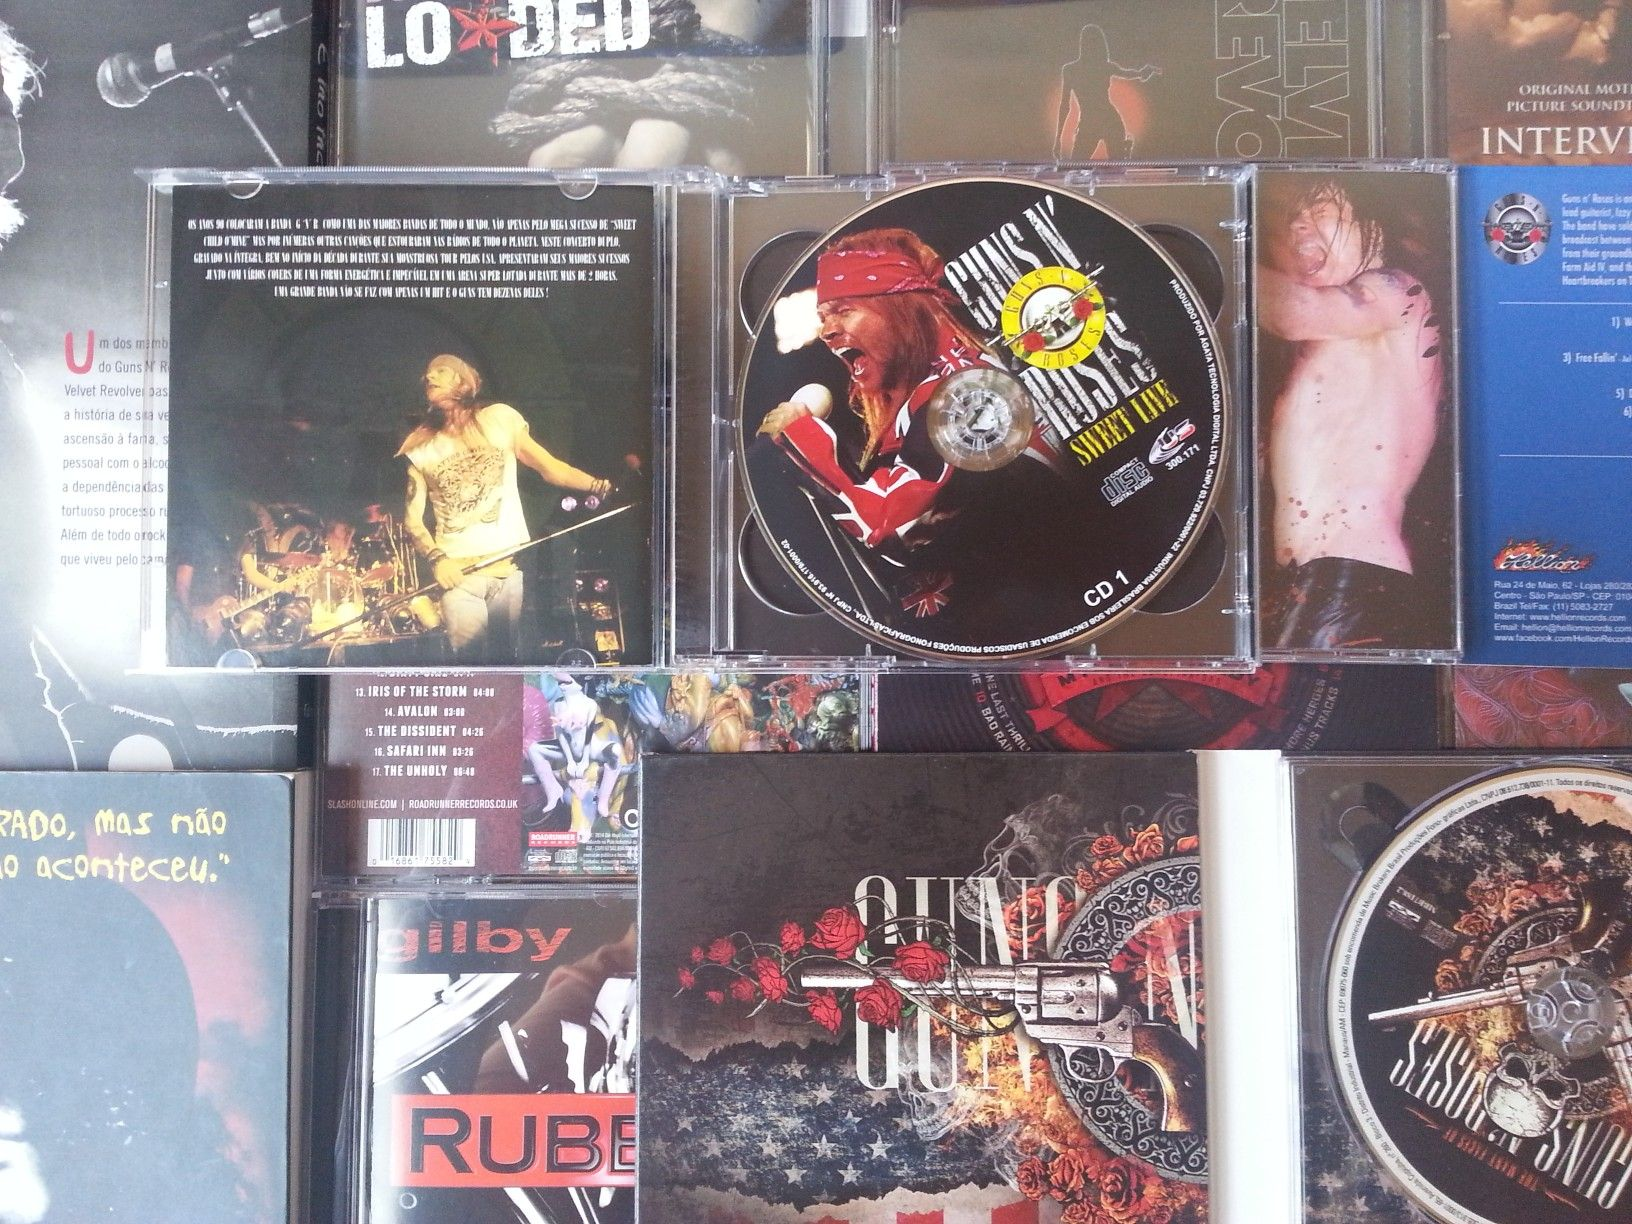 #gunsnroses #collection #cds